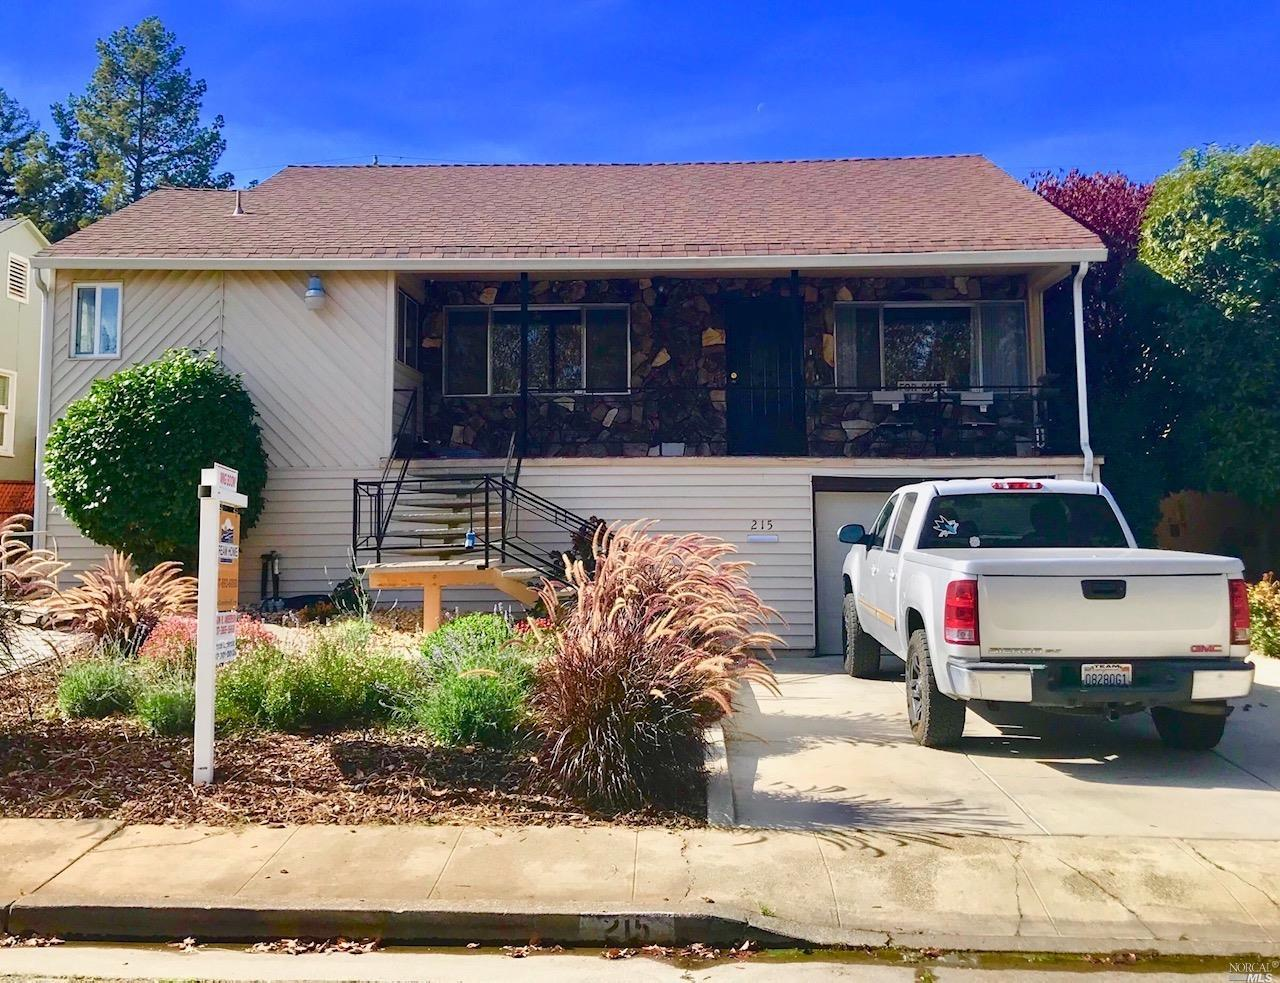 215 VIEWMONT AVENUE, VALLEJO, CA 94590